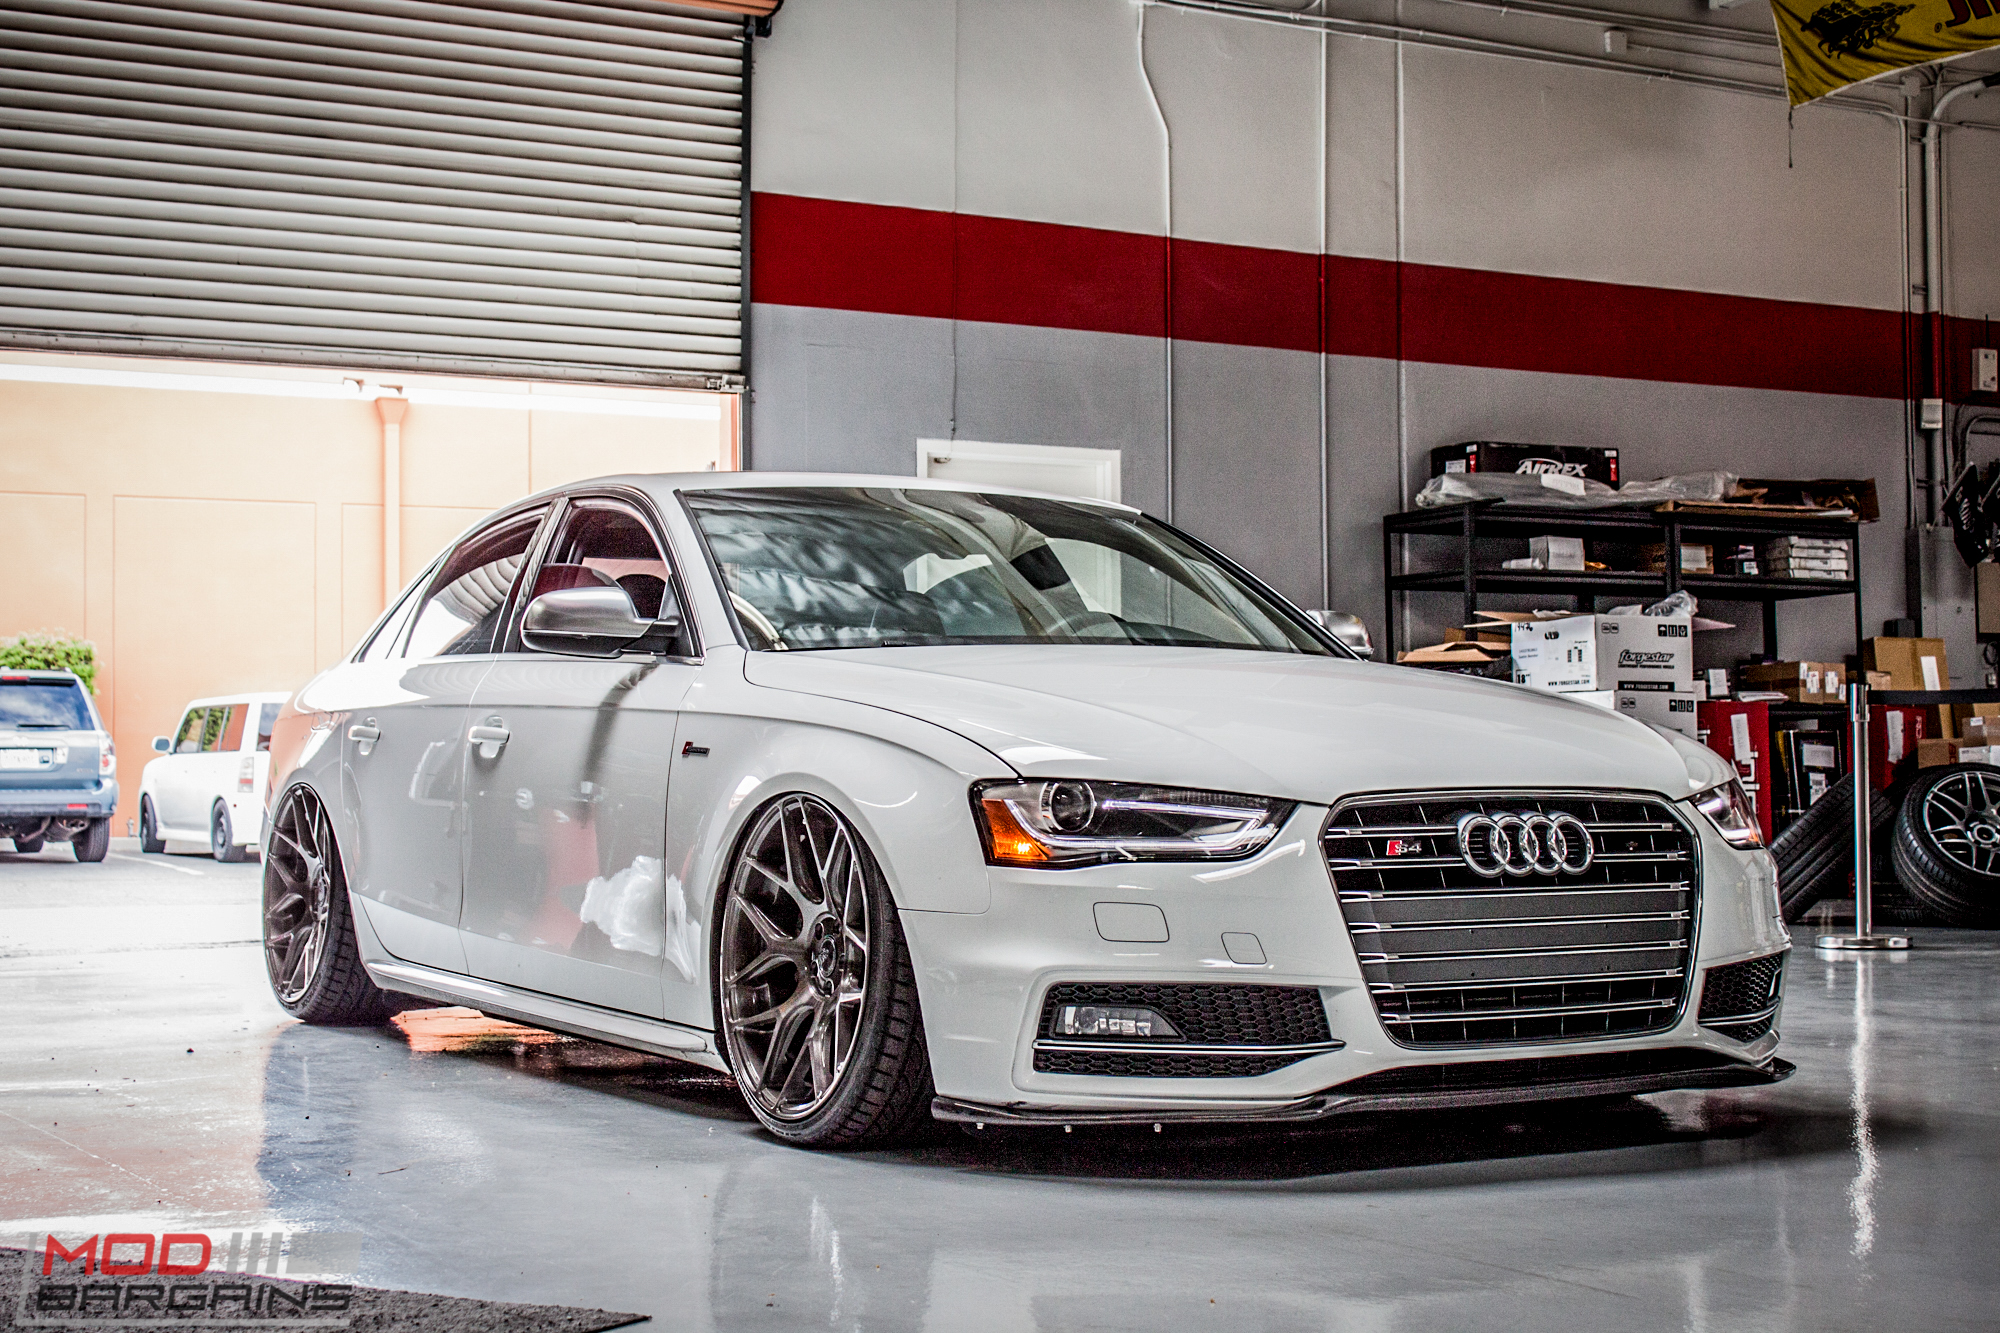 awe equipped airrex bagged b8 audi s4 gets deval aero. Black Bedroom Furniture Sets. Home Design Ideas